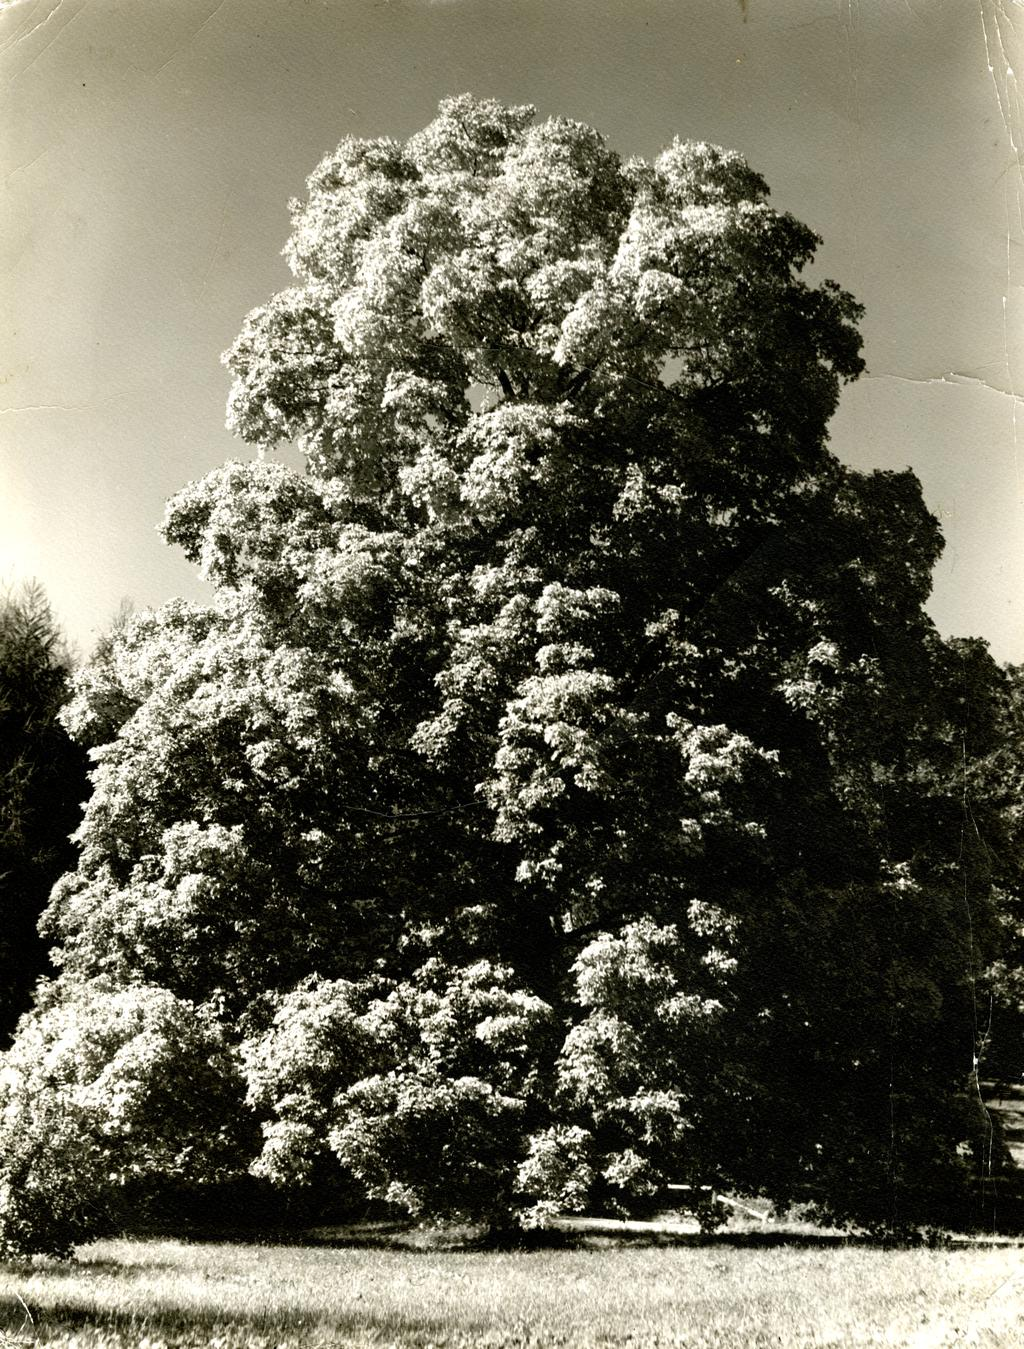 A black and grey photograph of a 250 year old sugar maple tree.